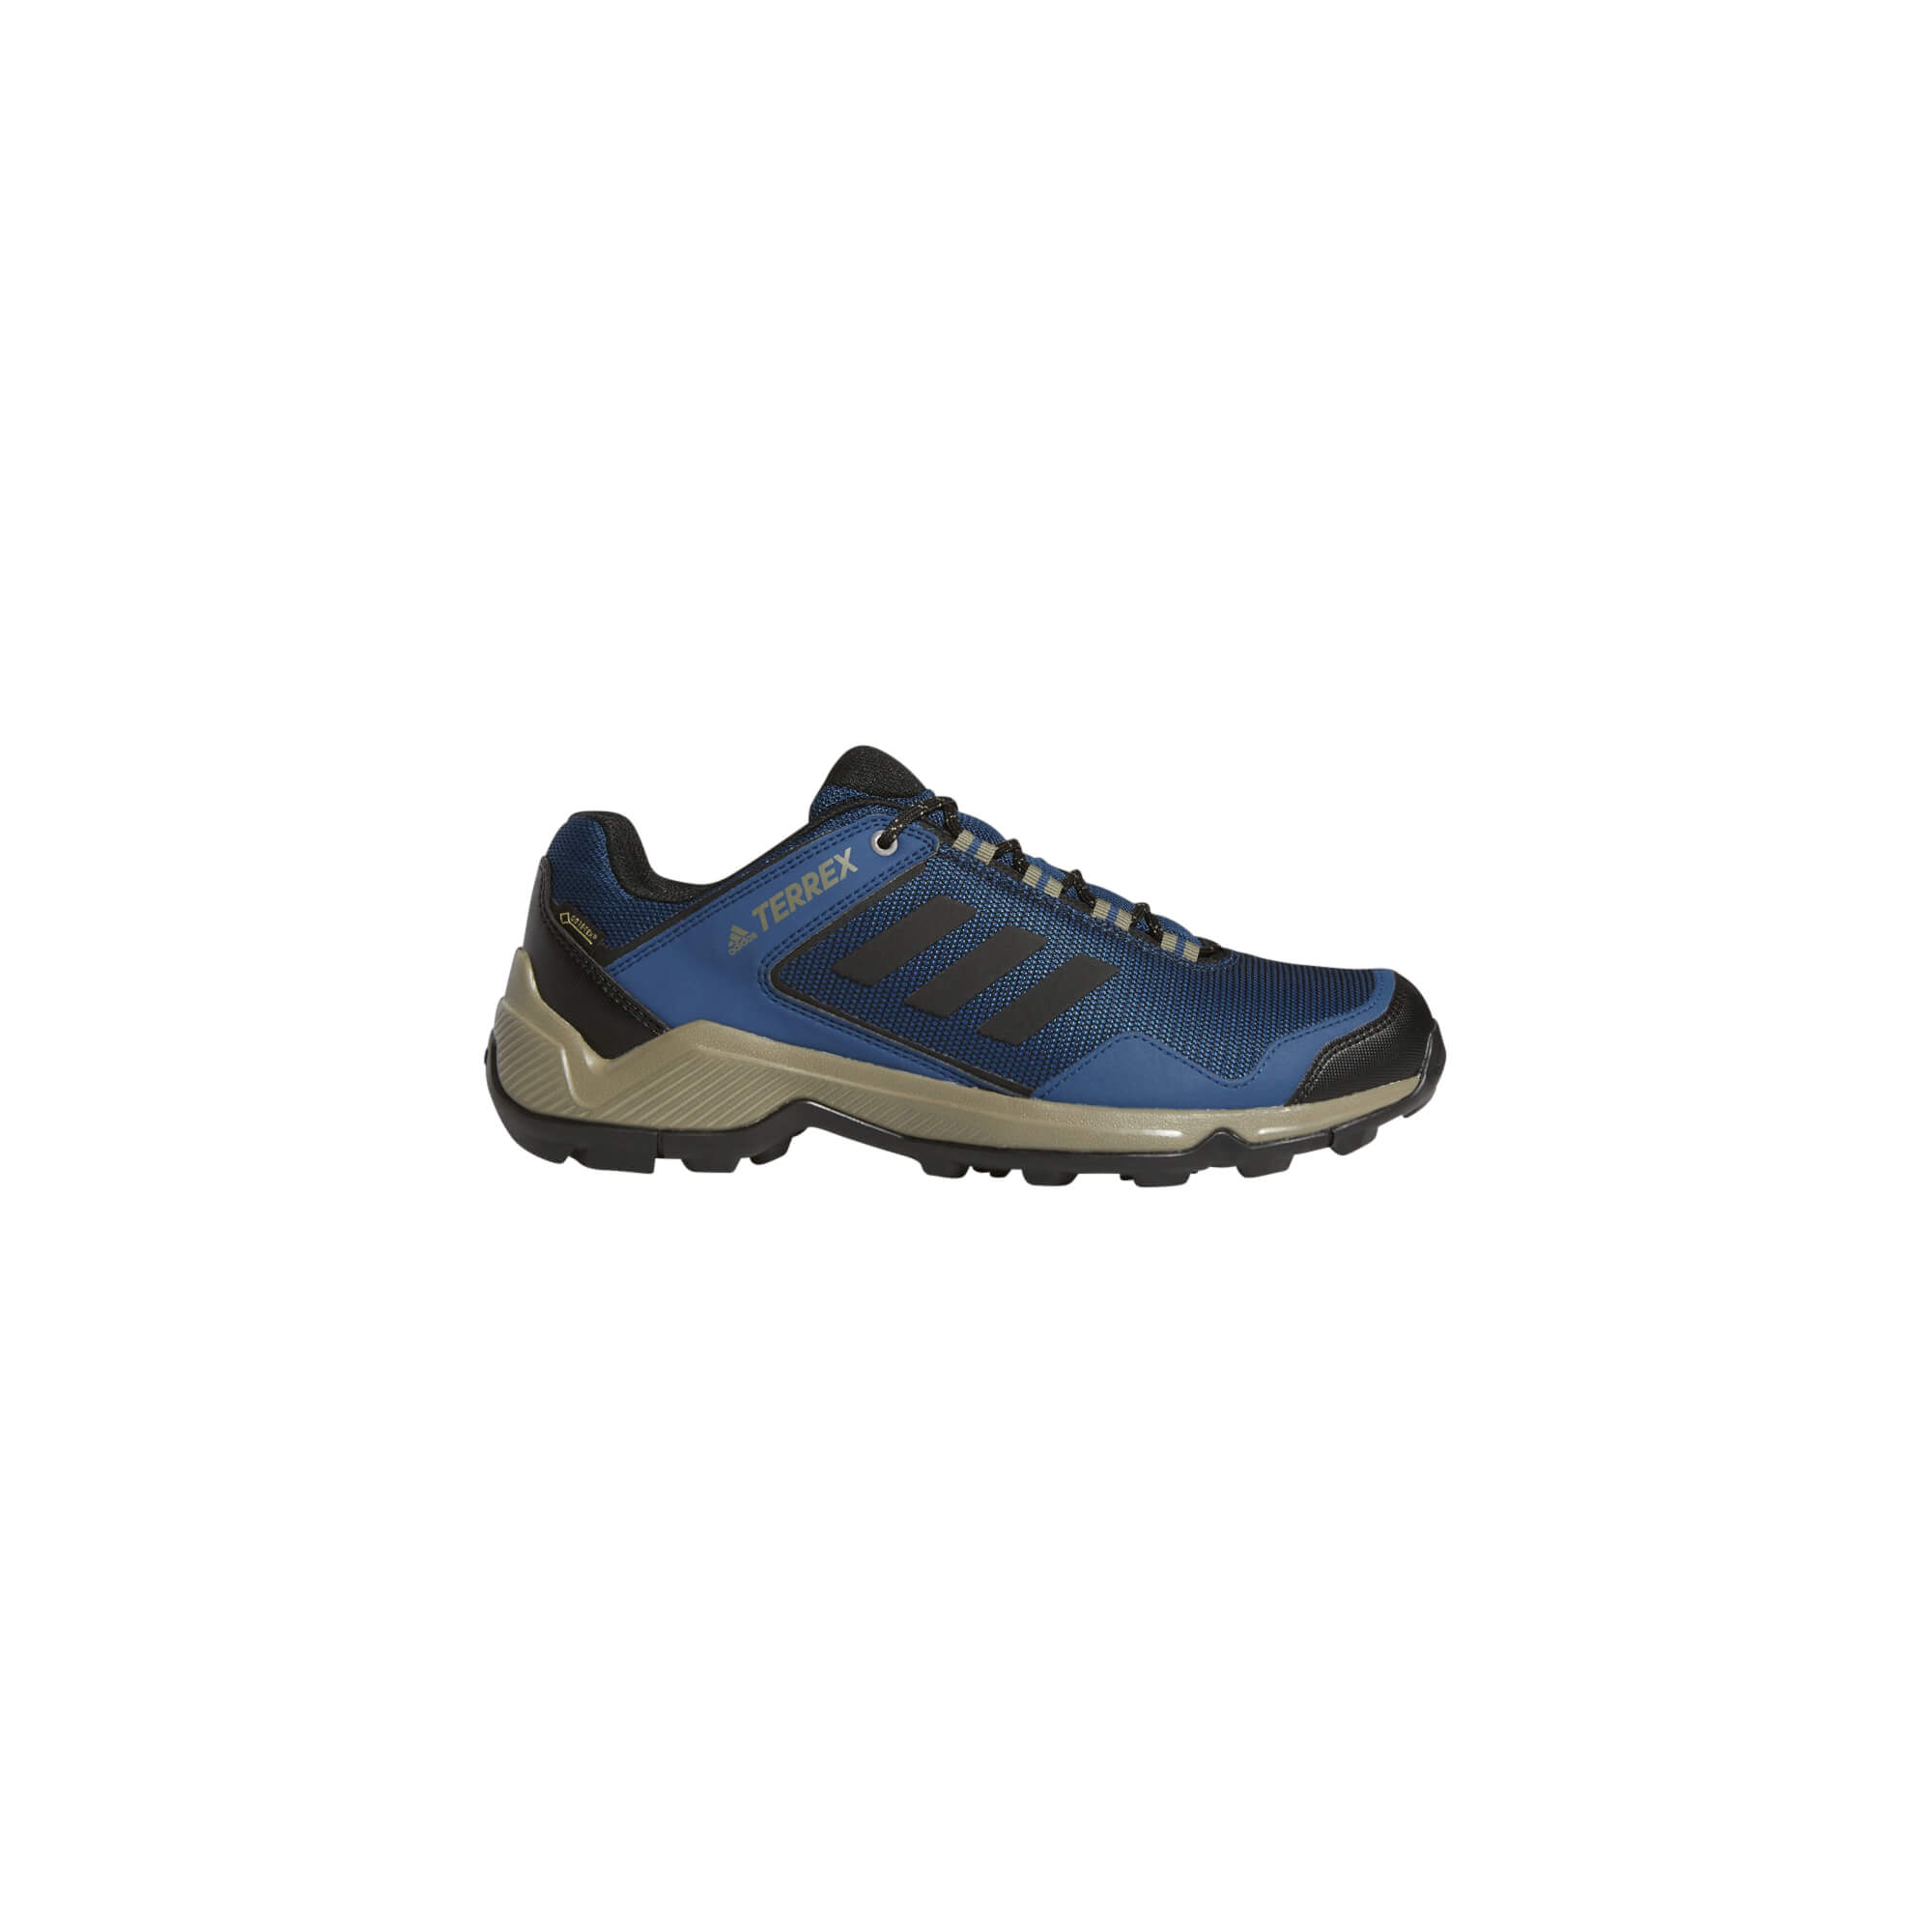 Terrex Entry Hiker GTX imagine produs